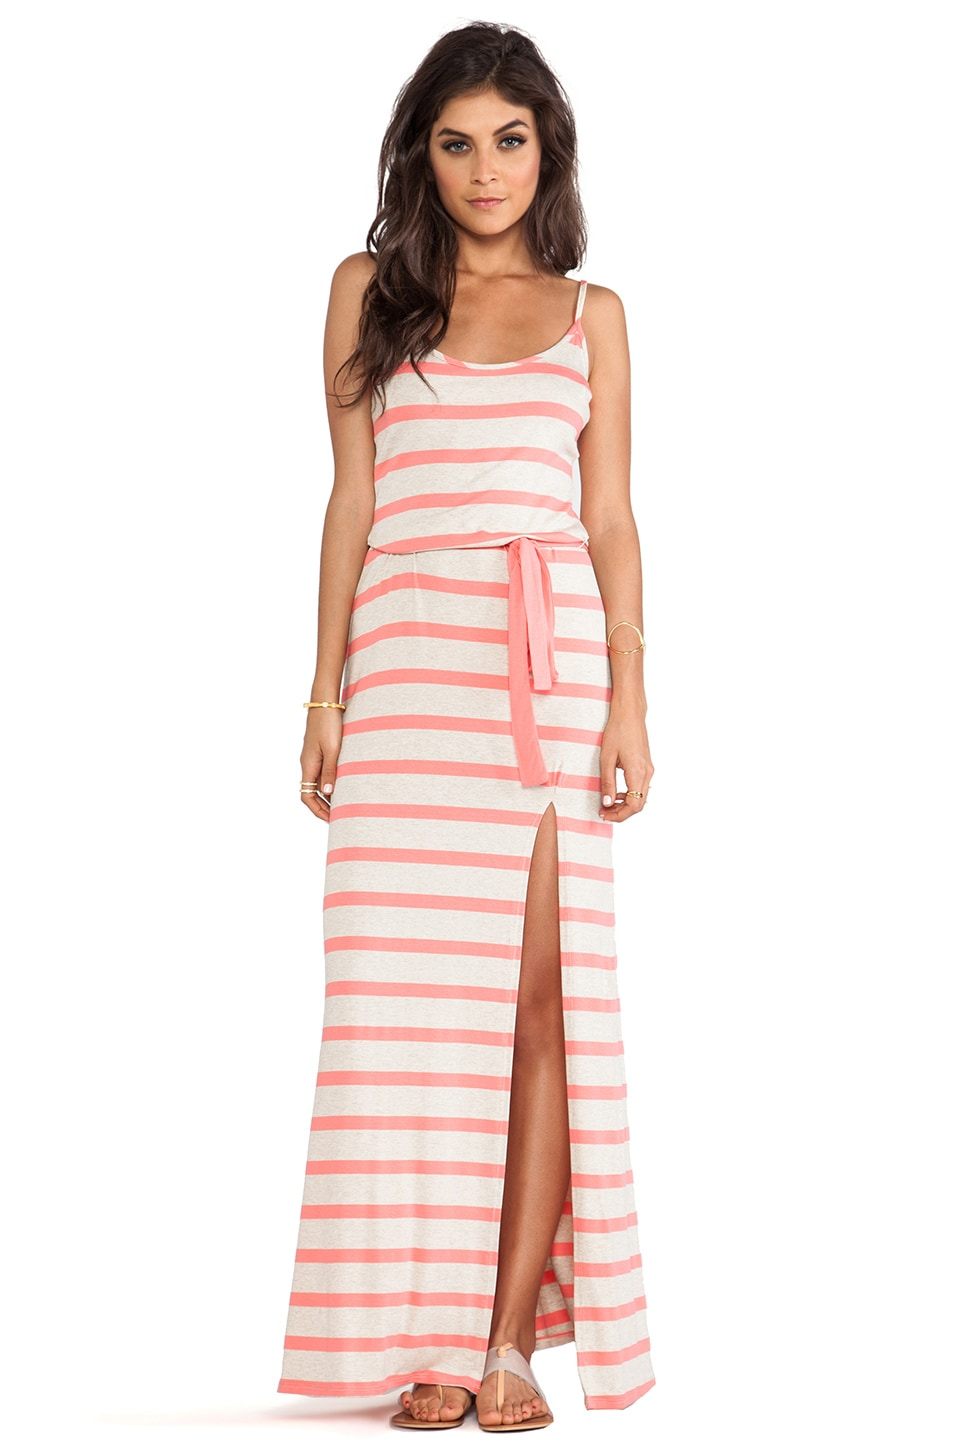 LA Made Stripe Side Slit Tank Dress in Grapefruit Stripe